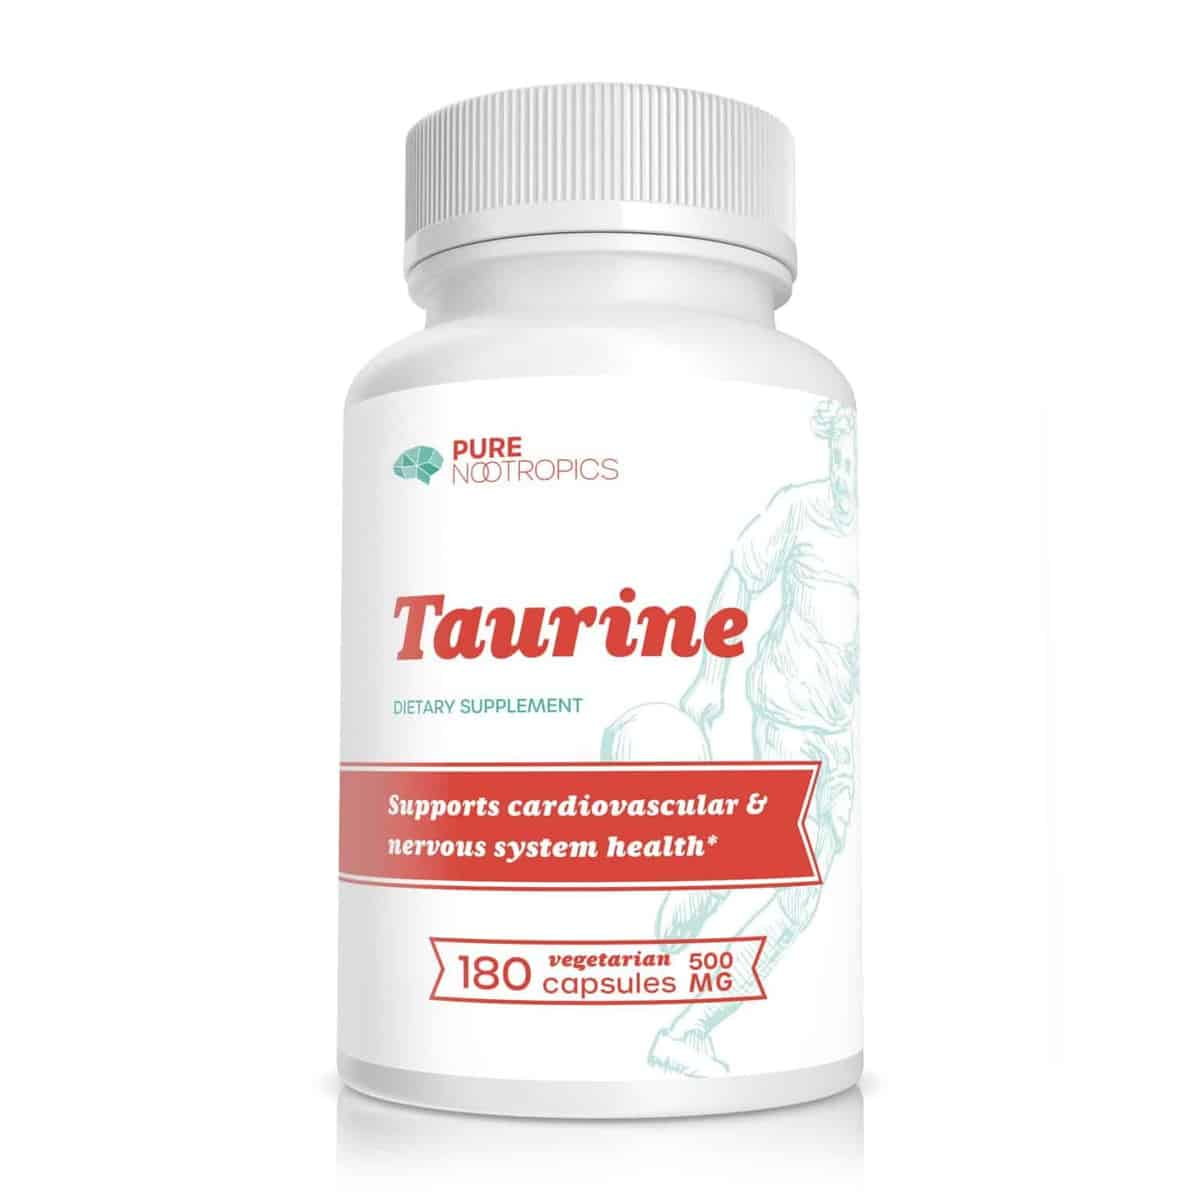 where to buy Taurine, buy Taurine from pure nootropics